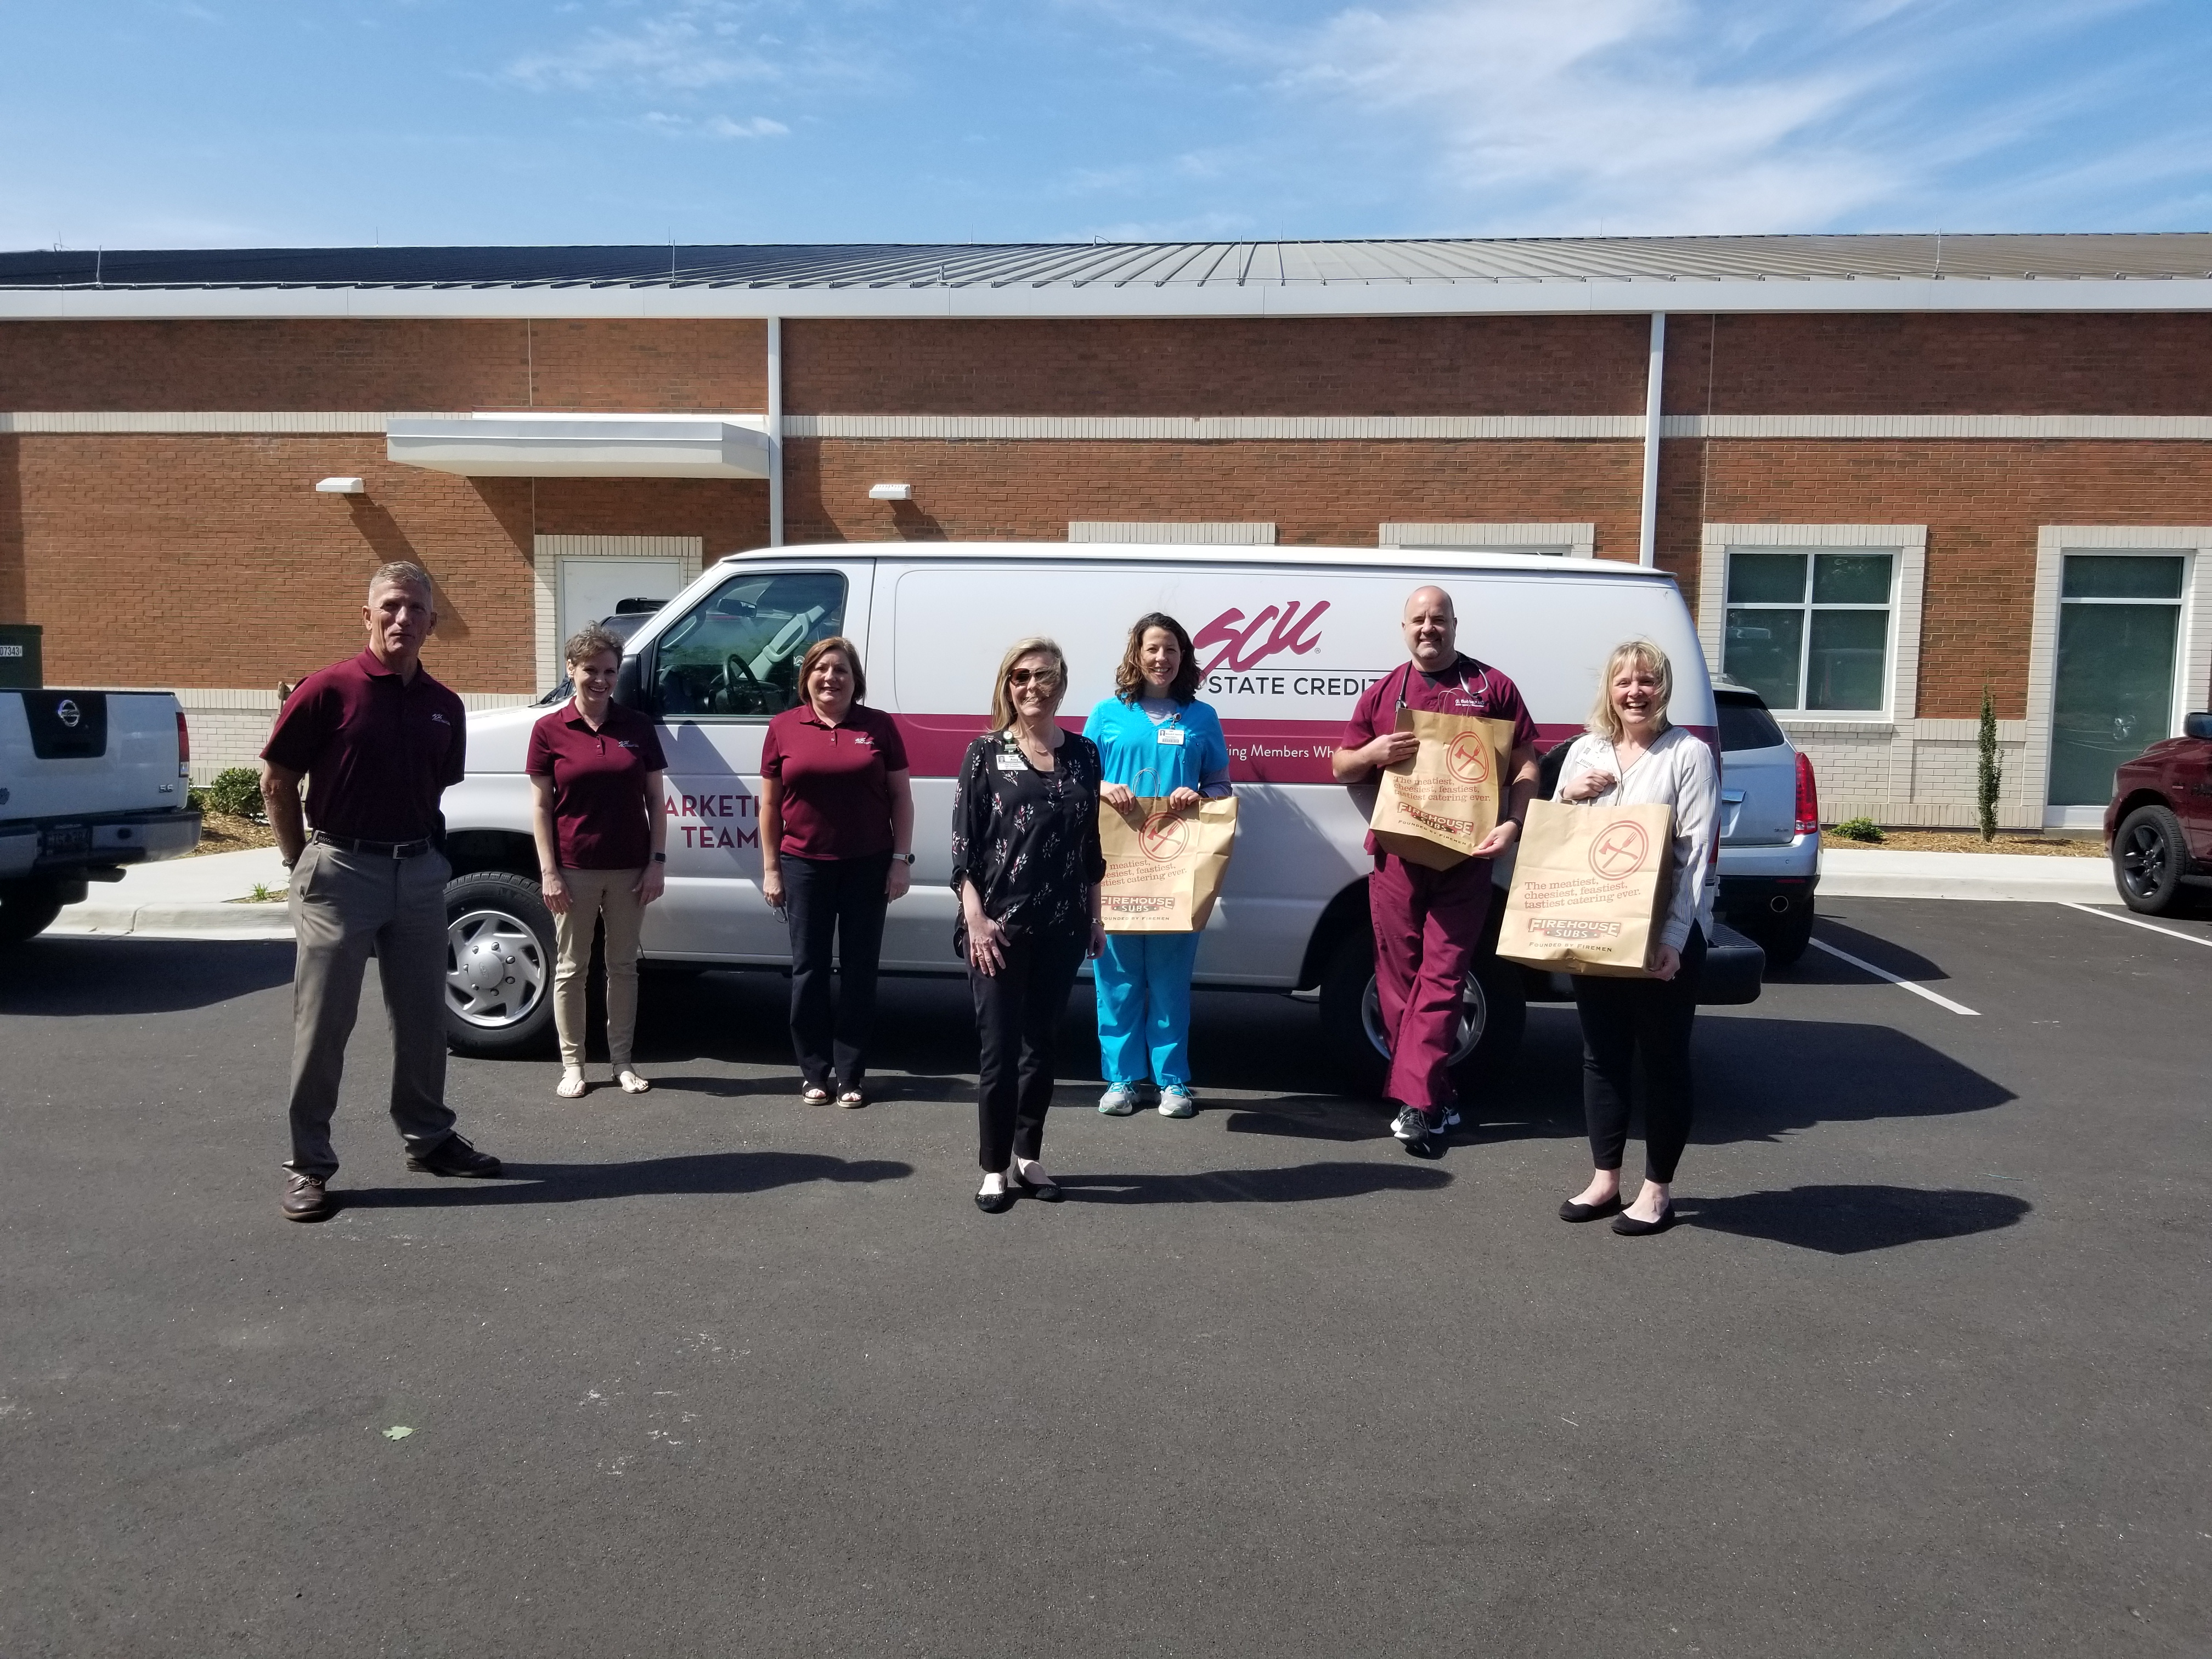 SCU president Jim Kinard poses for a photo with two SCU staff members and 4 LMC employees in a rough semi-circle in the hospital parking lot in front of a white SCU van, with the LMC employees holding large paper bags from Firehouse Subs.